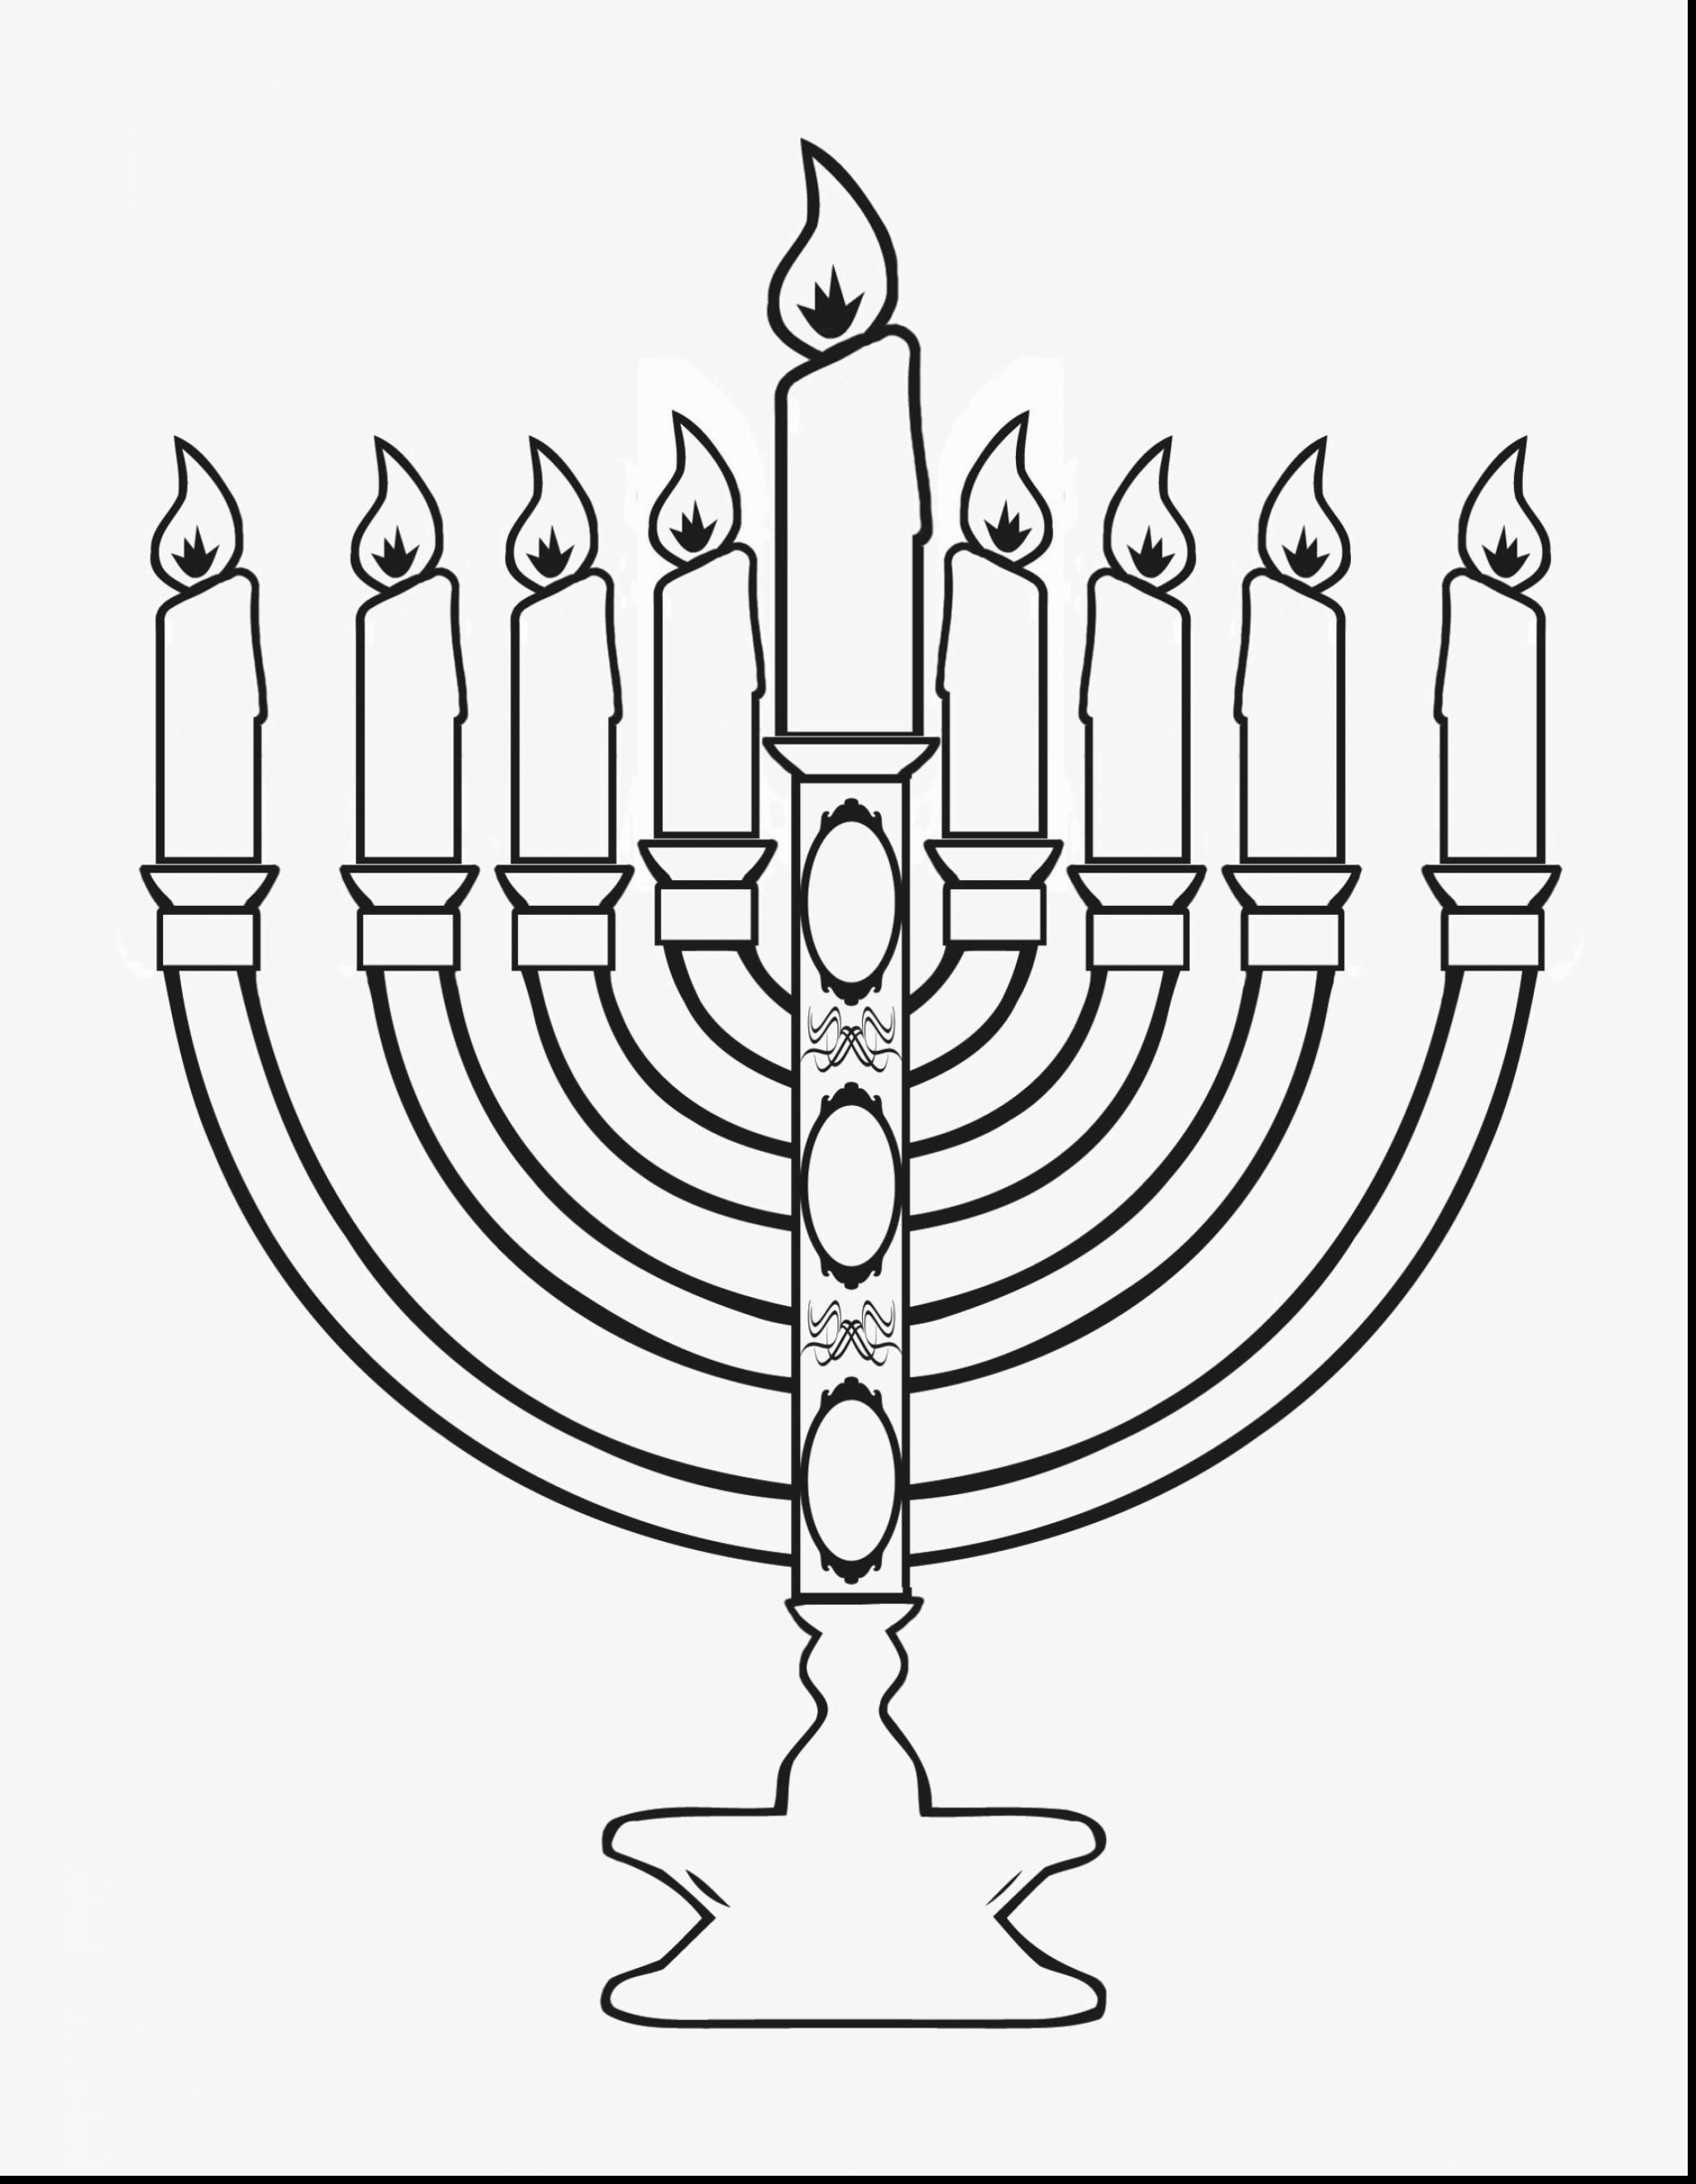 Hanukkah clipart black and white to color vector black and white Hanukkah Menorah Outline - Free Clip Art | Bible | Super coloring ... vector black and white